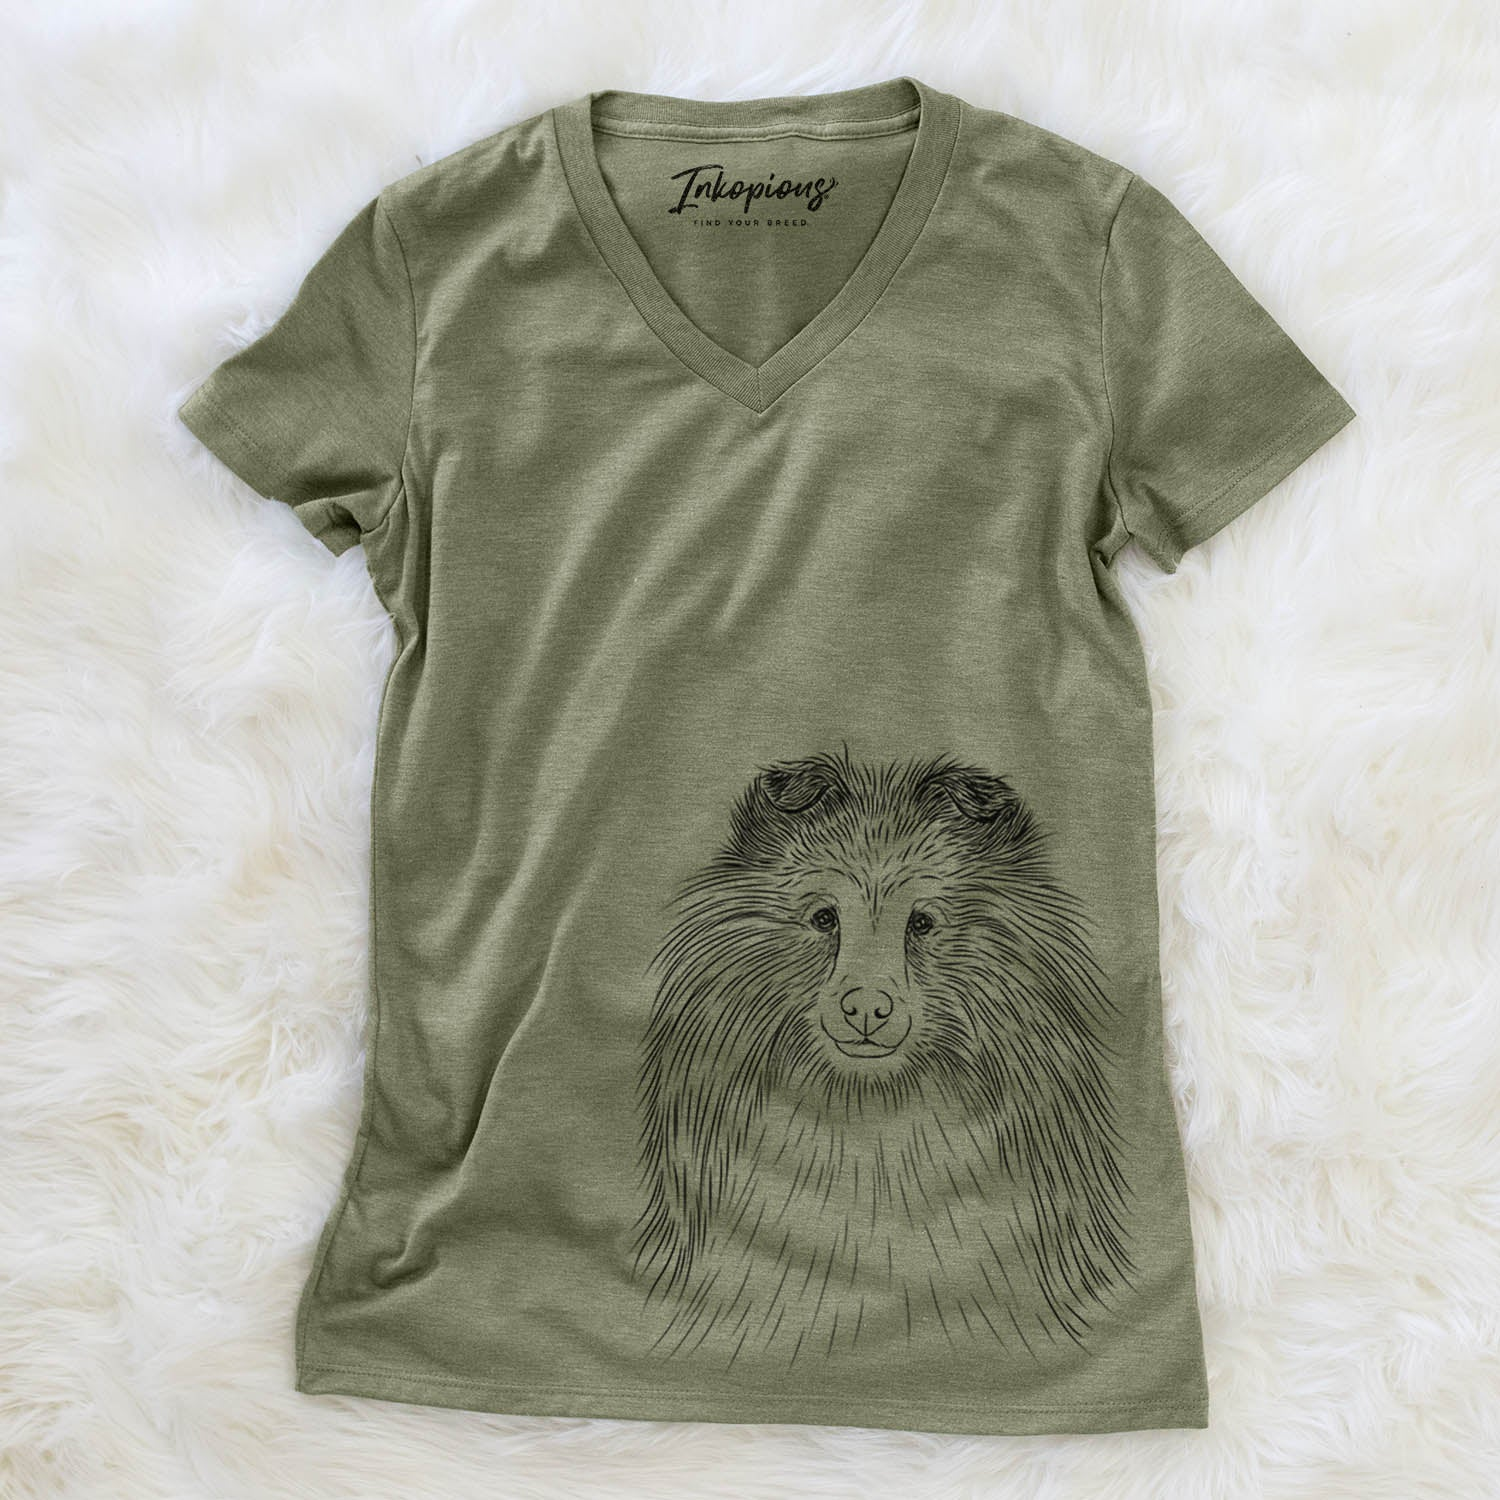 Moxie the Shetland Sheepdog - Women's Modern Fit V-neck Shirt